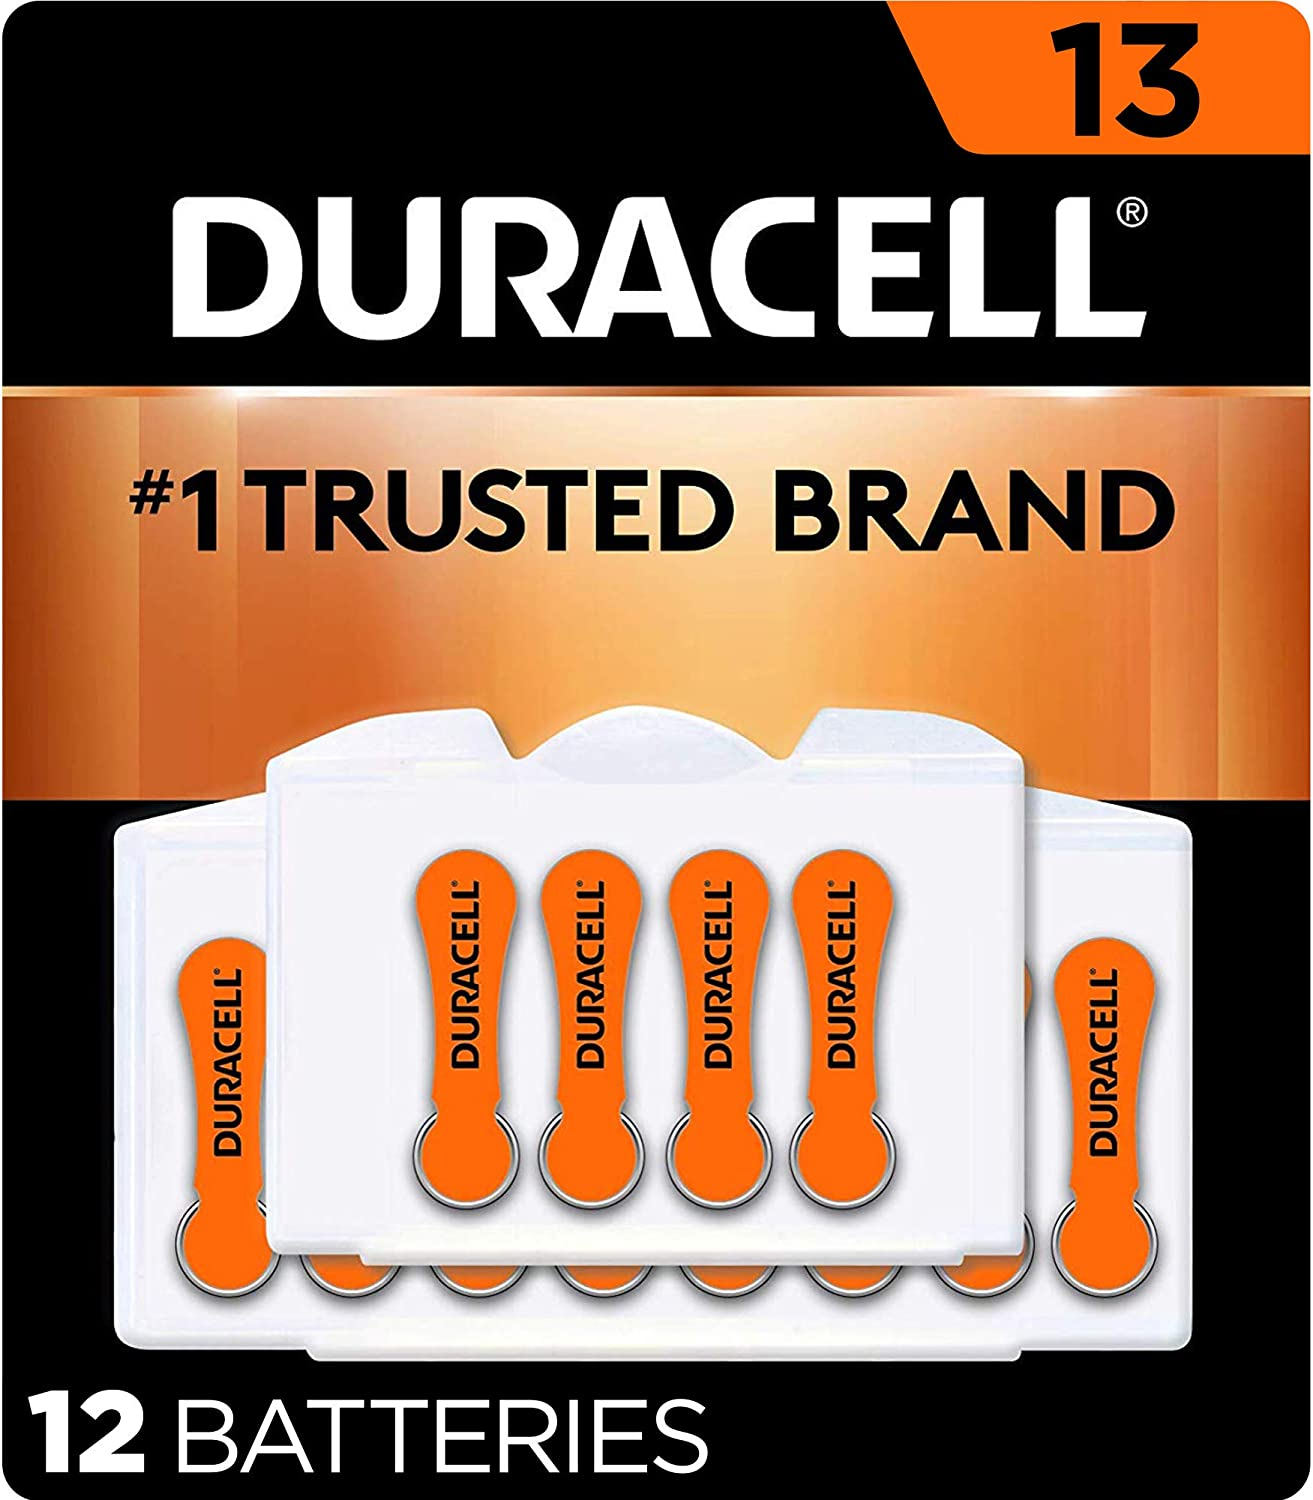 Duracell - Hearing Aid Batteries Size 13 (Orange) - long lasting battery with EasyTab for ease of installation - 12 count